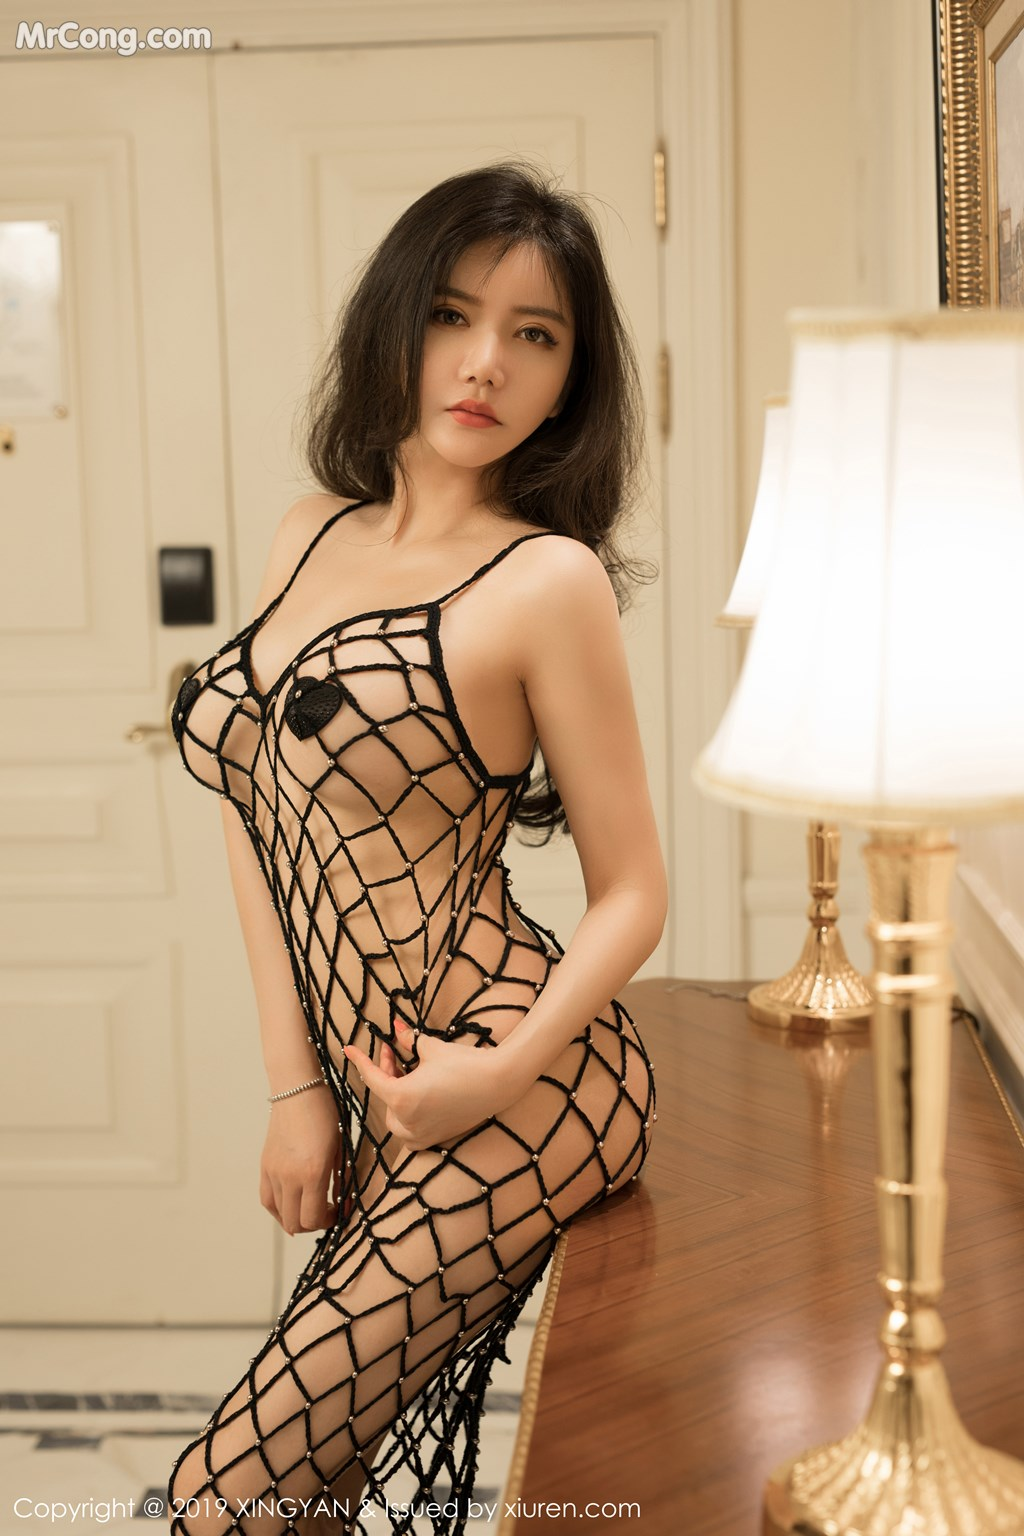 Image XingYan-Vol.126-MrCong.com-024 in post XingYan Vol.126: 心妍小公主 (36 ảnh)